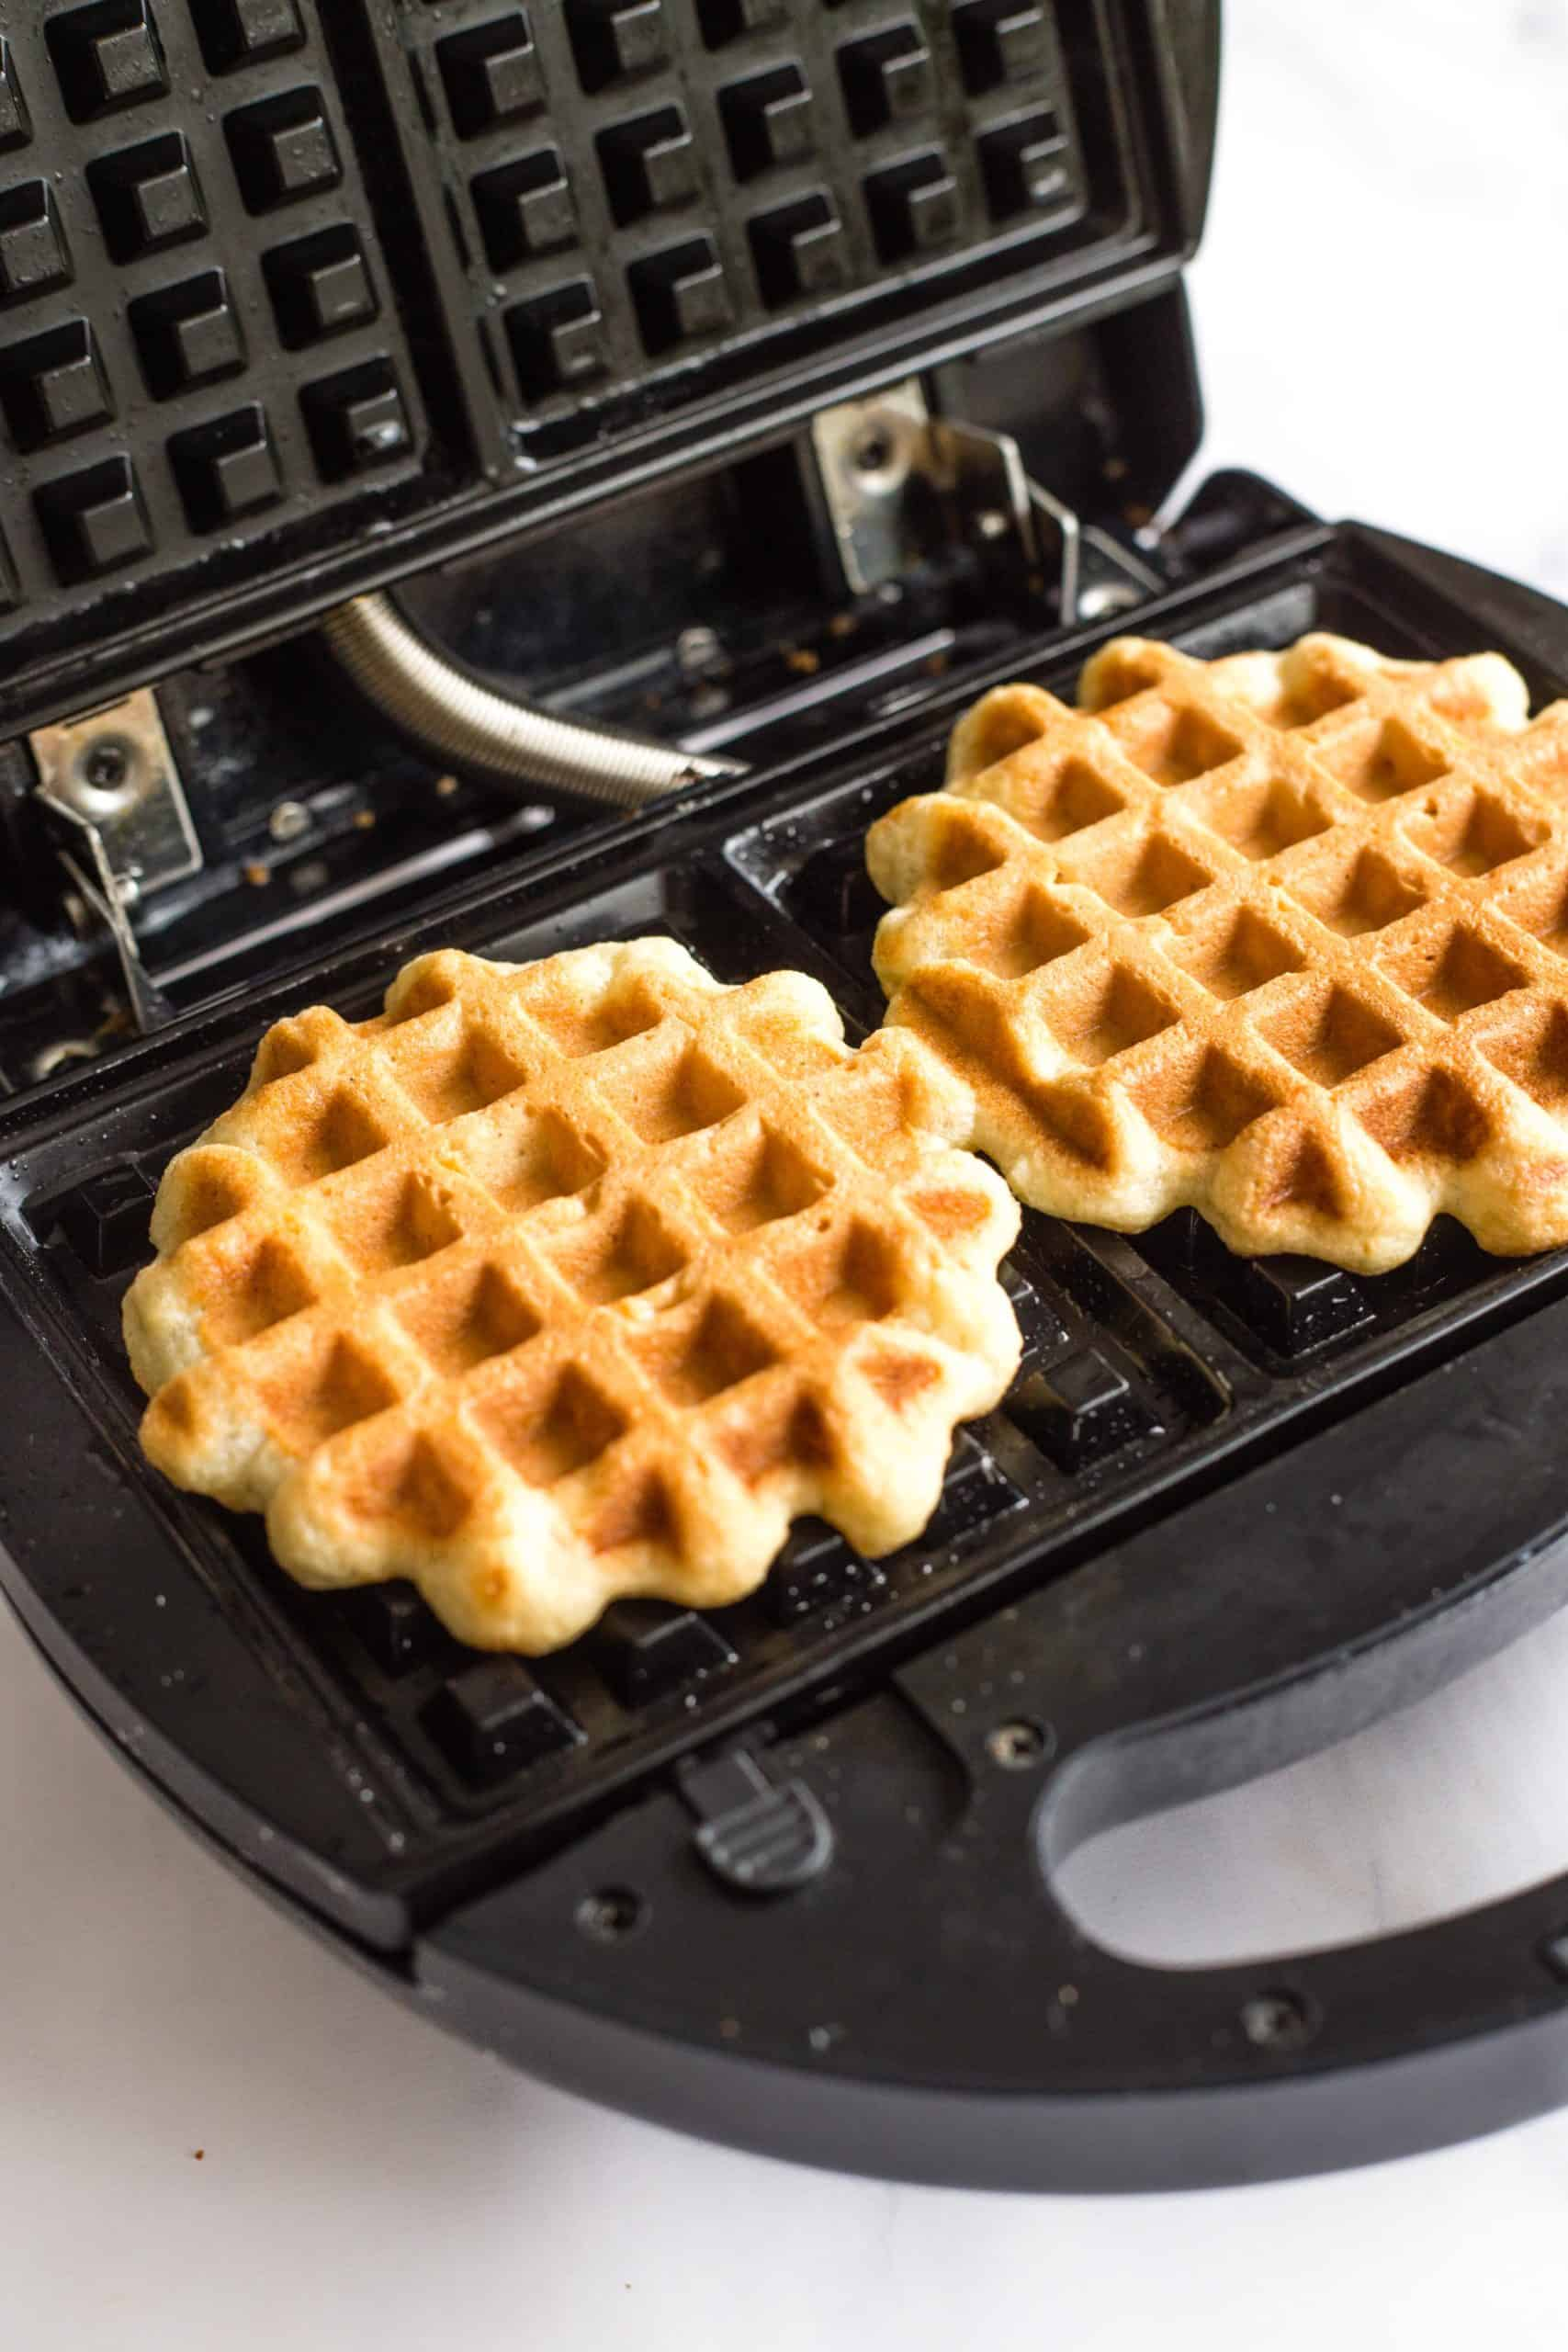 Freshly cooked golden brown crispy waffles in the waffle iron.